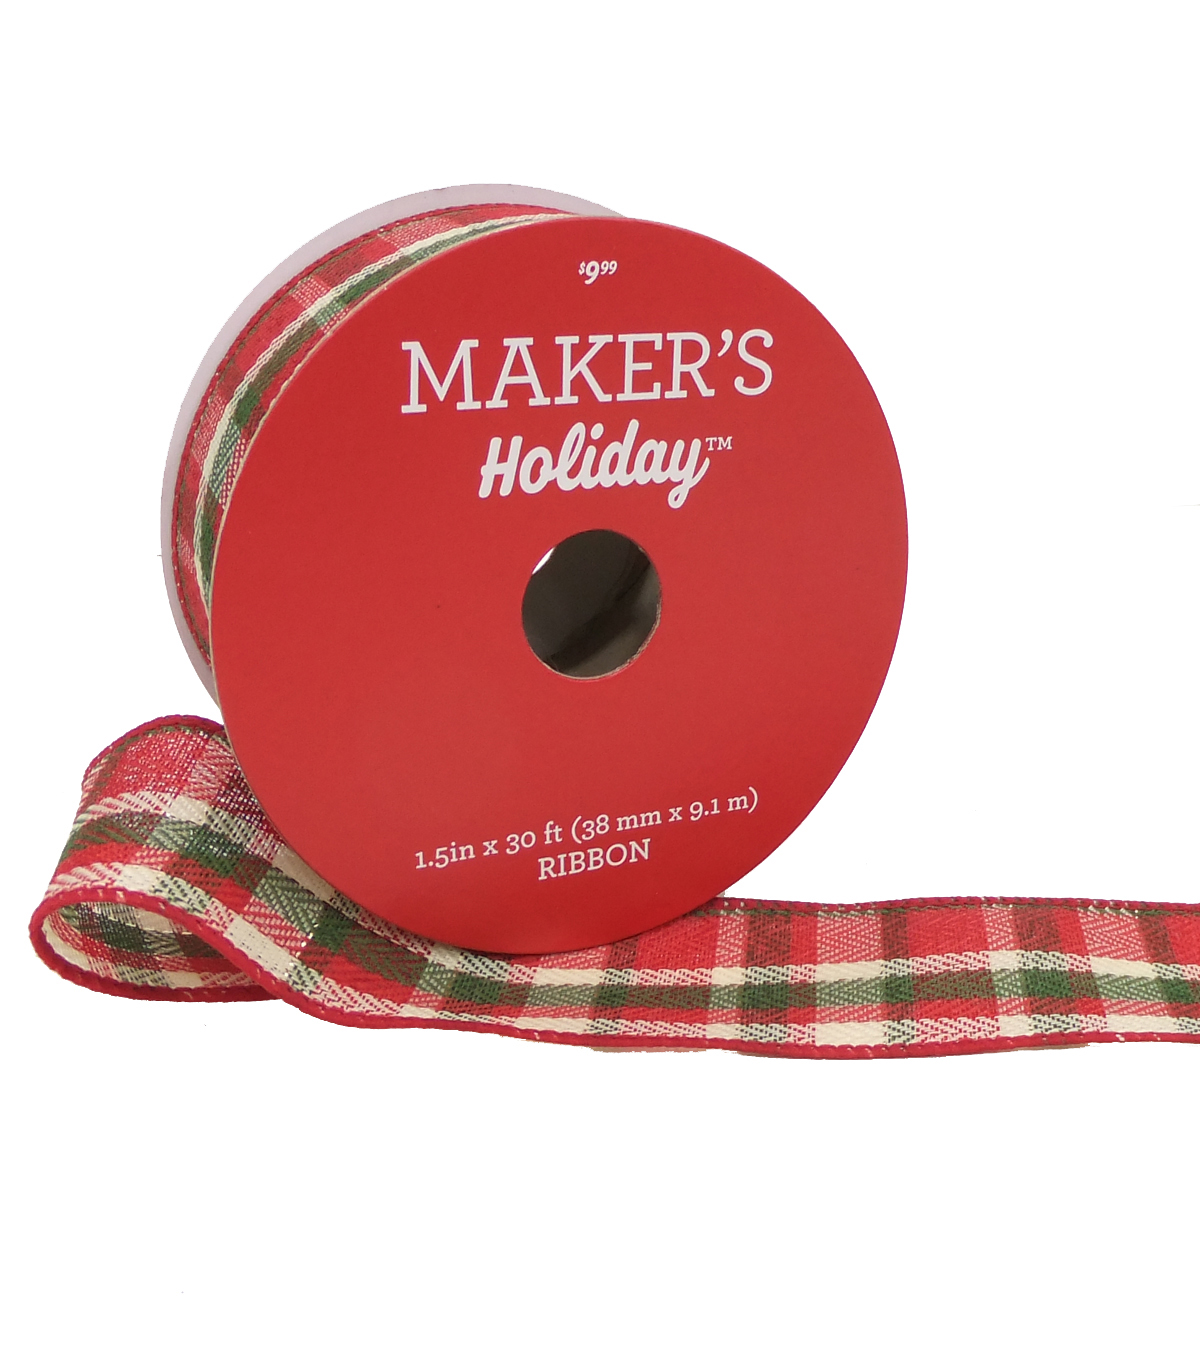 Maker's Holiday Christmas Ribbon 1.5''X30'-Beige, Green & Red Plaid